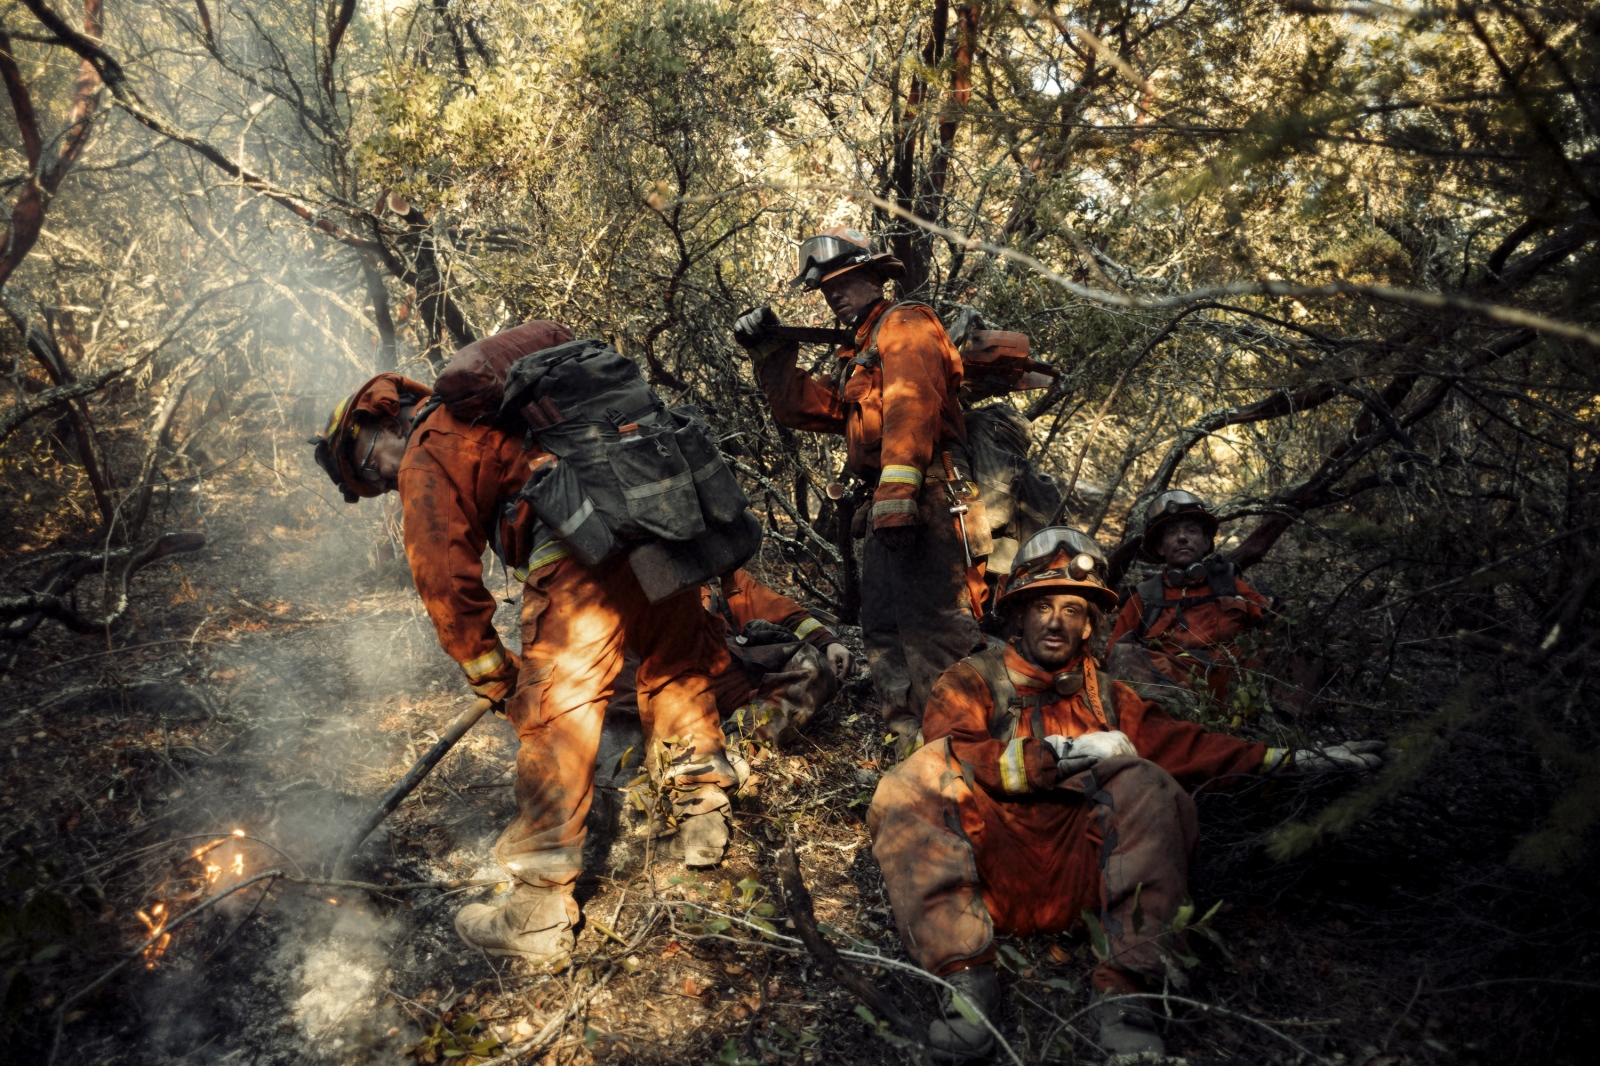 Inmate firefighters Eduardo Amezcua puts out a hotspot while Jon Hooker (standing with chainsaw) looks on during the fires that devastated much of California's wine country.